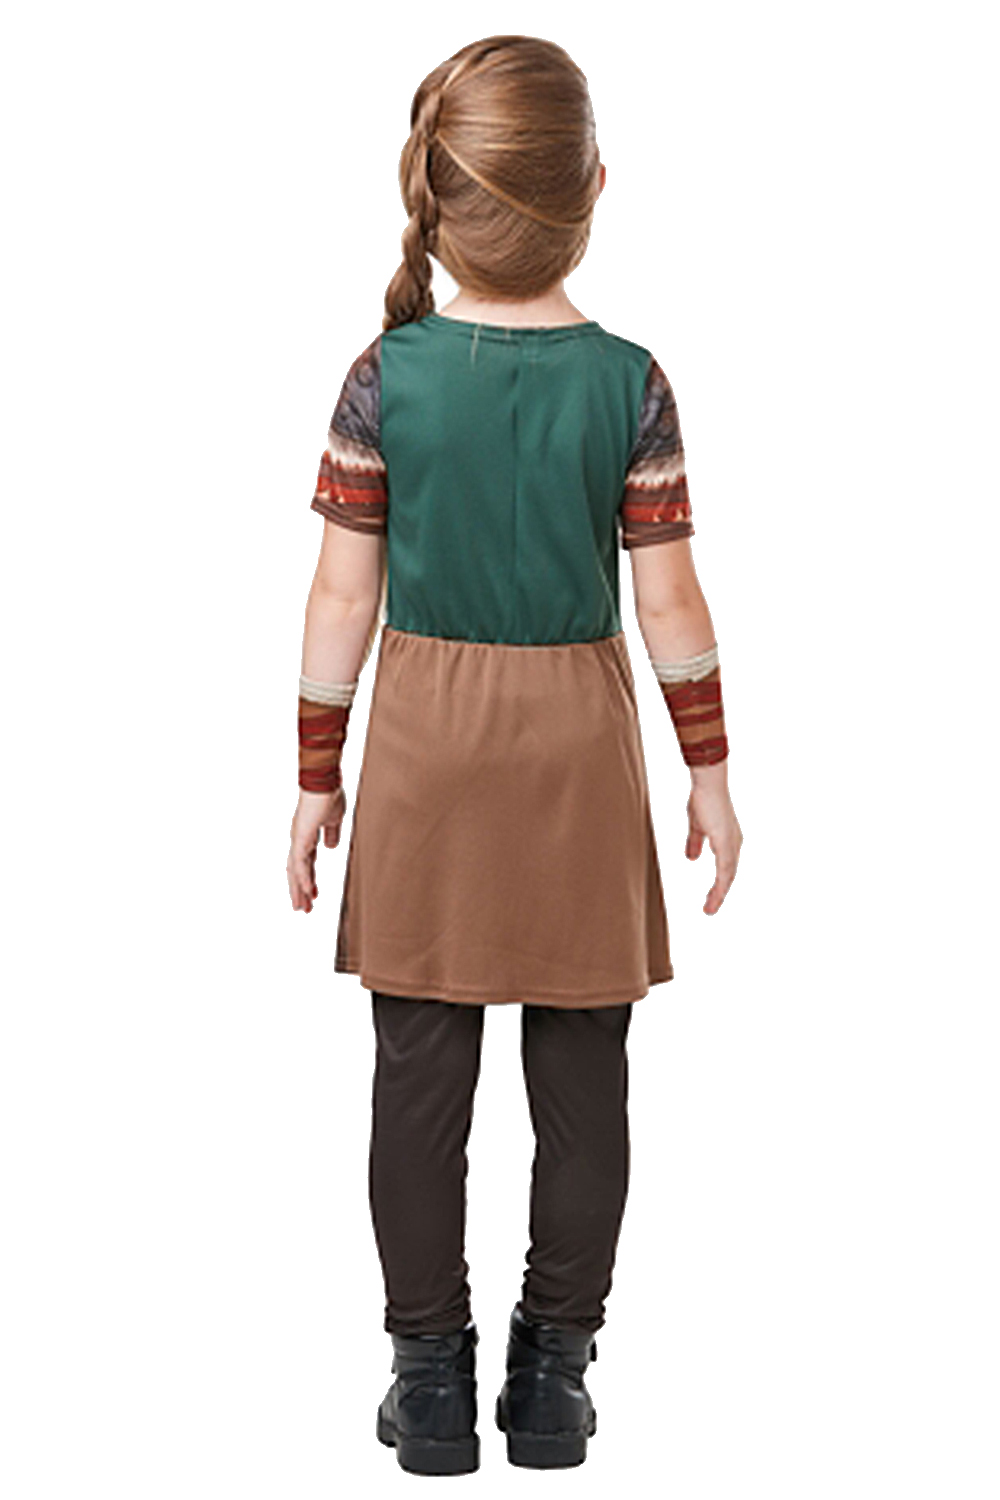 Rubies Kids Official How To Train Your Dragon Deluxe Astrid Fancy Dress Costume